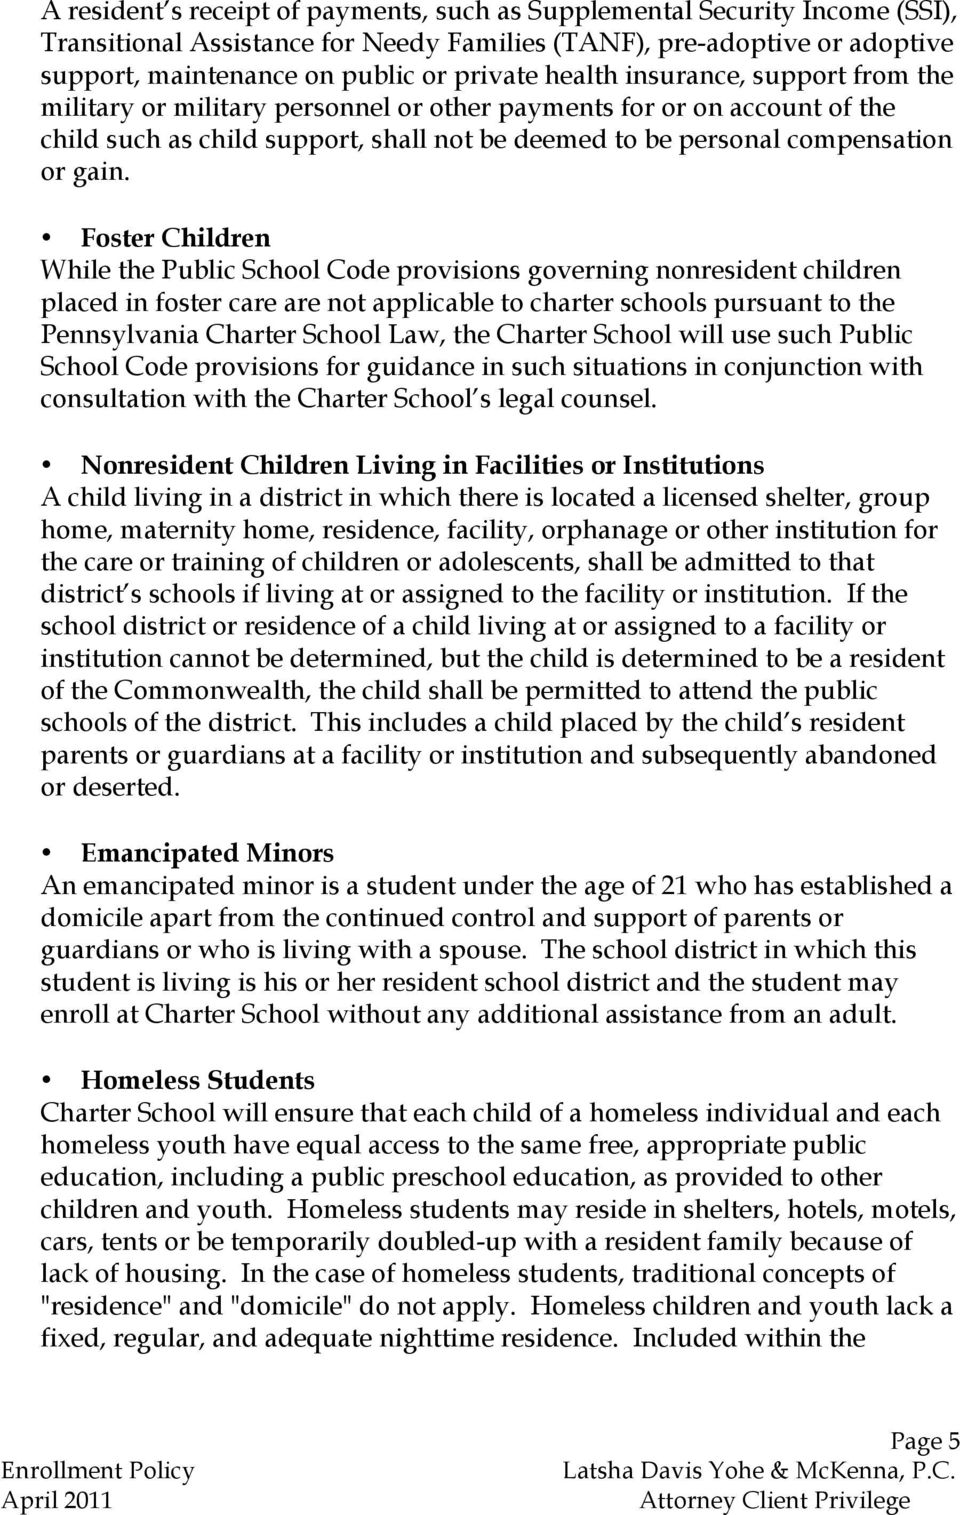 Foster Children While the Public School Code provisions governing nonresident children placed in foster care are not applicable to charter schools pursuant to the Pennsylvania Charter School Law, the